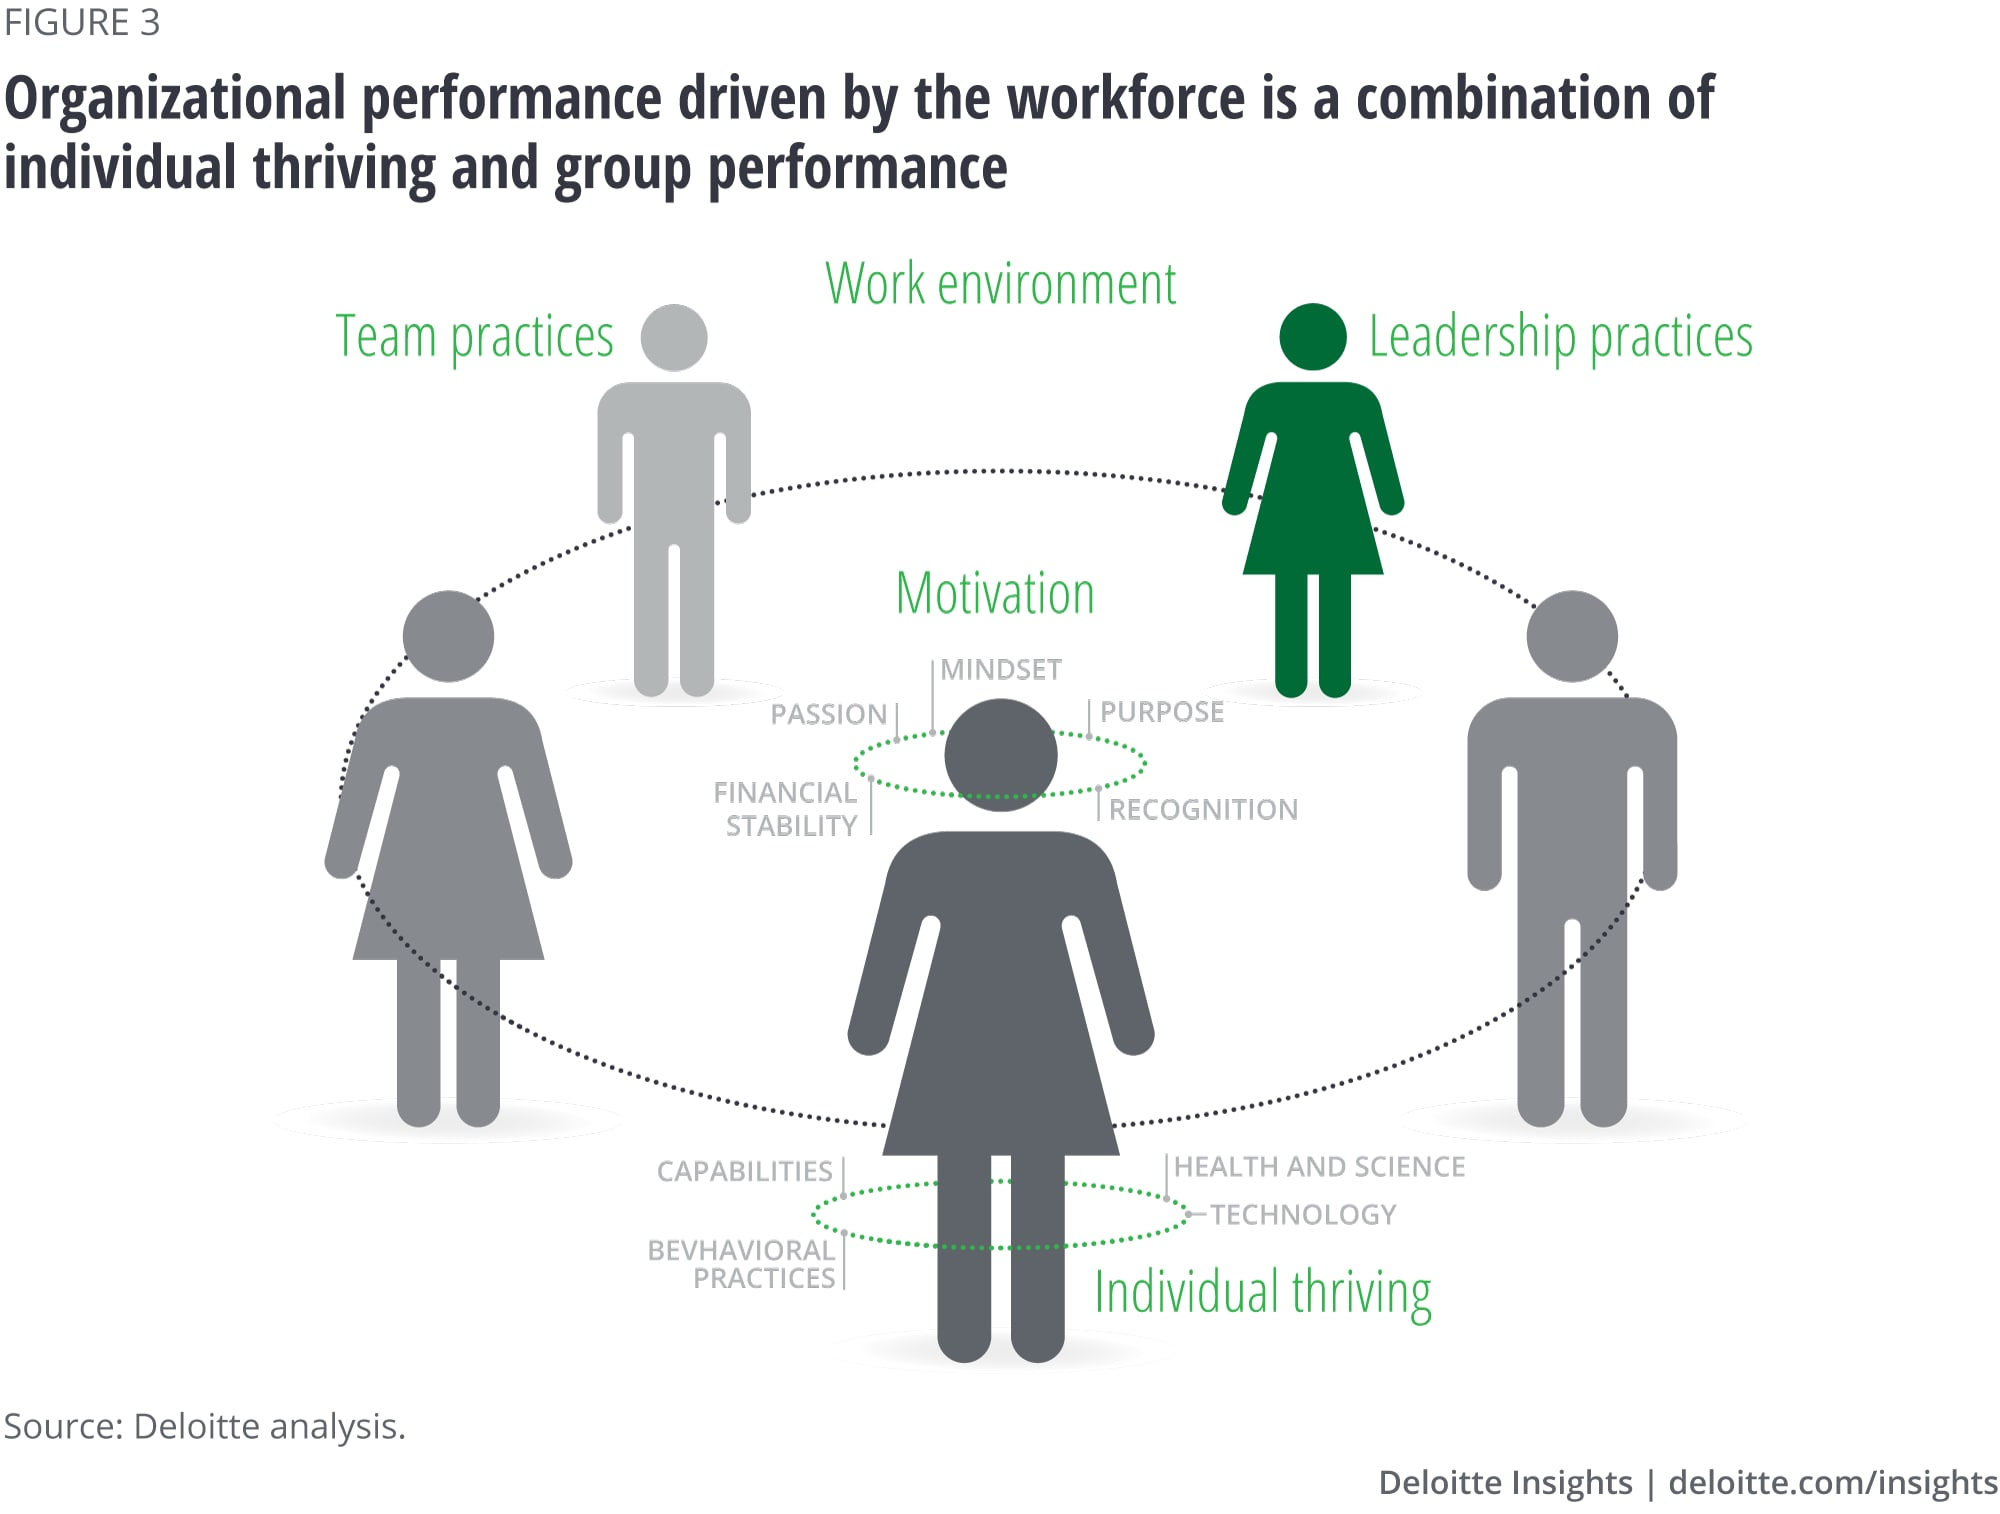 Organizational performance driven by the workforce is a combination of individual thriving and group performance